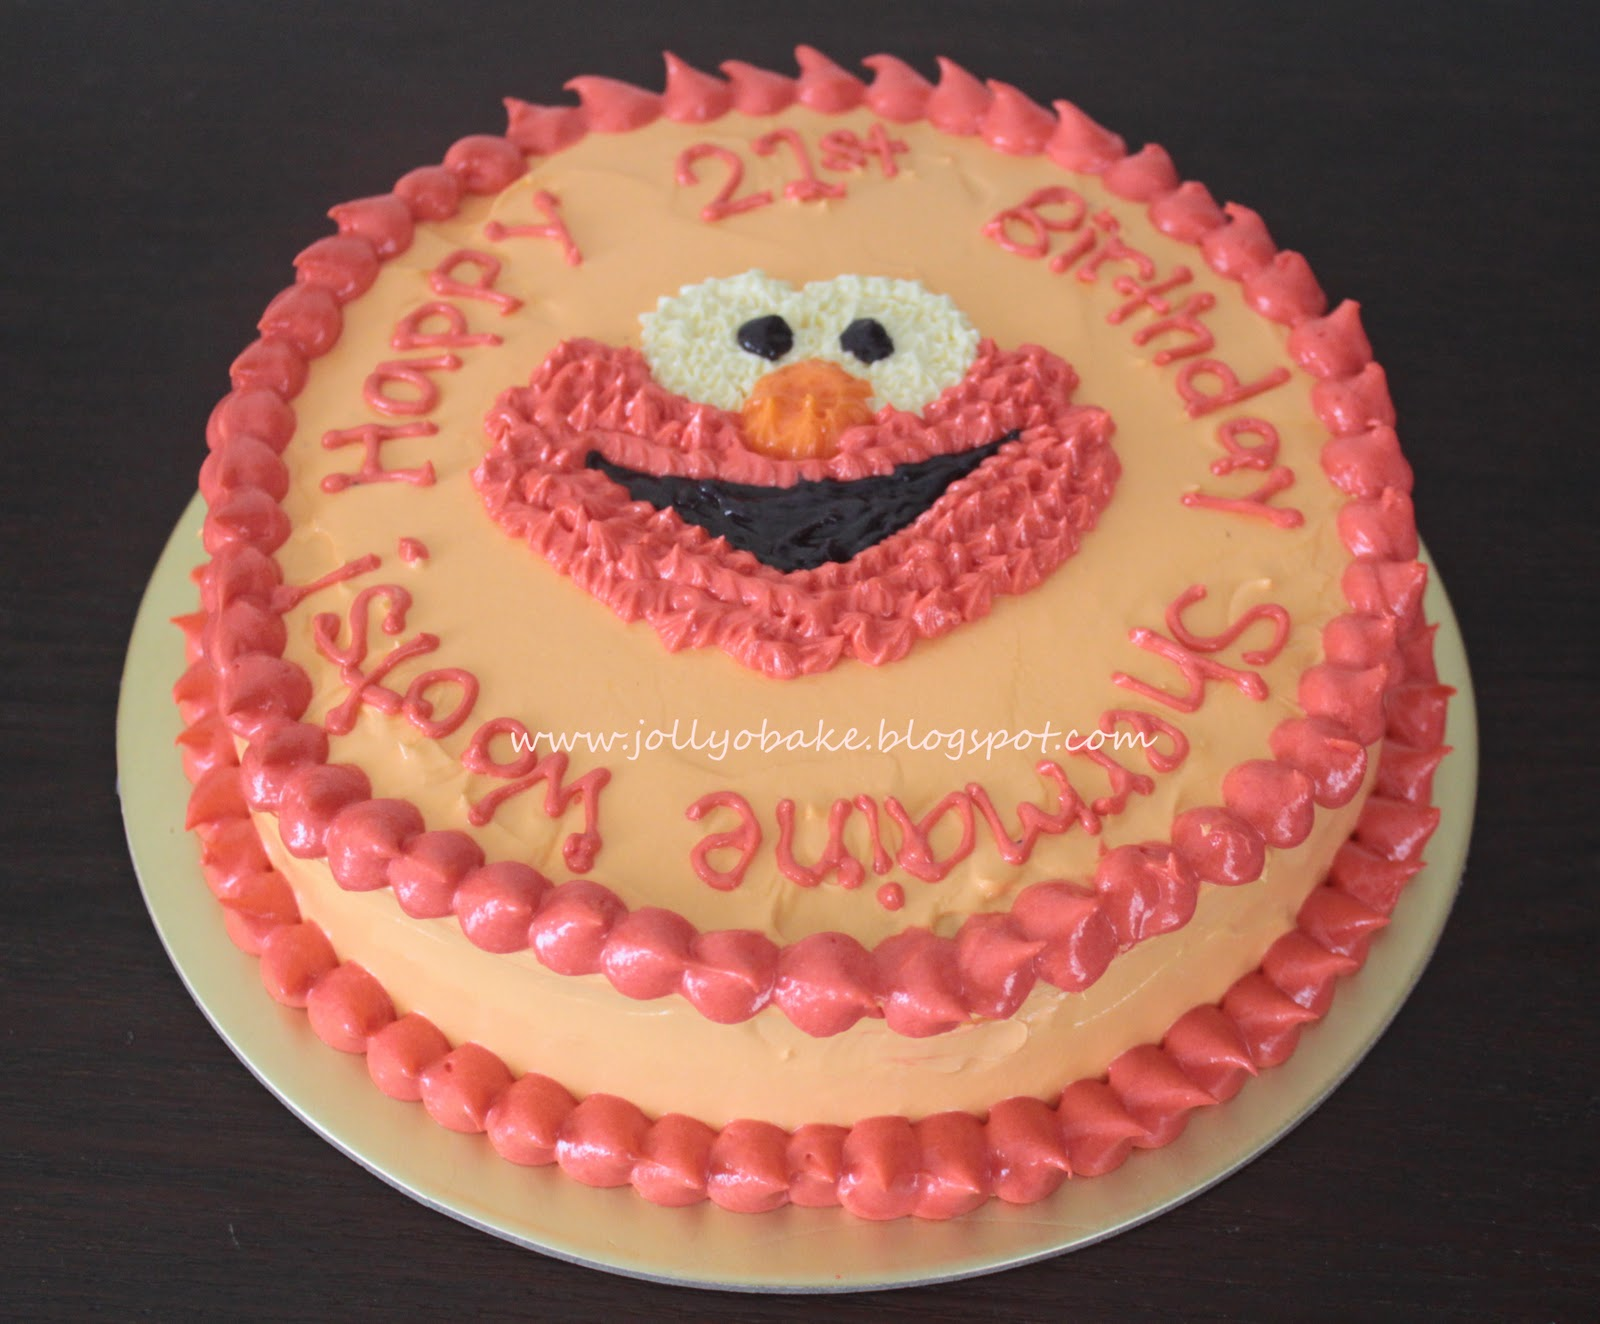 received an order for an elmo red velvet cake around 2 months ago